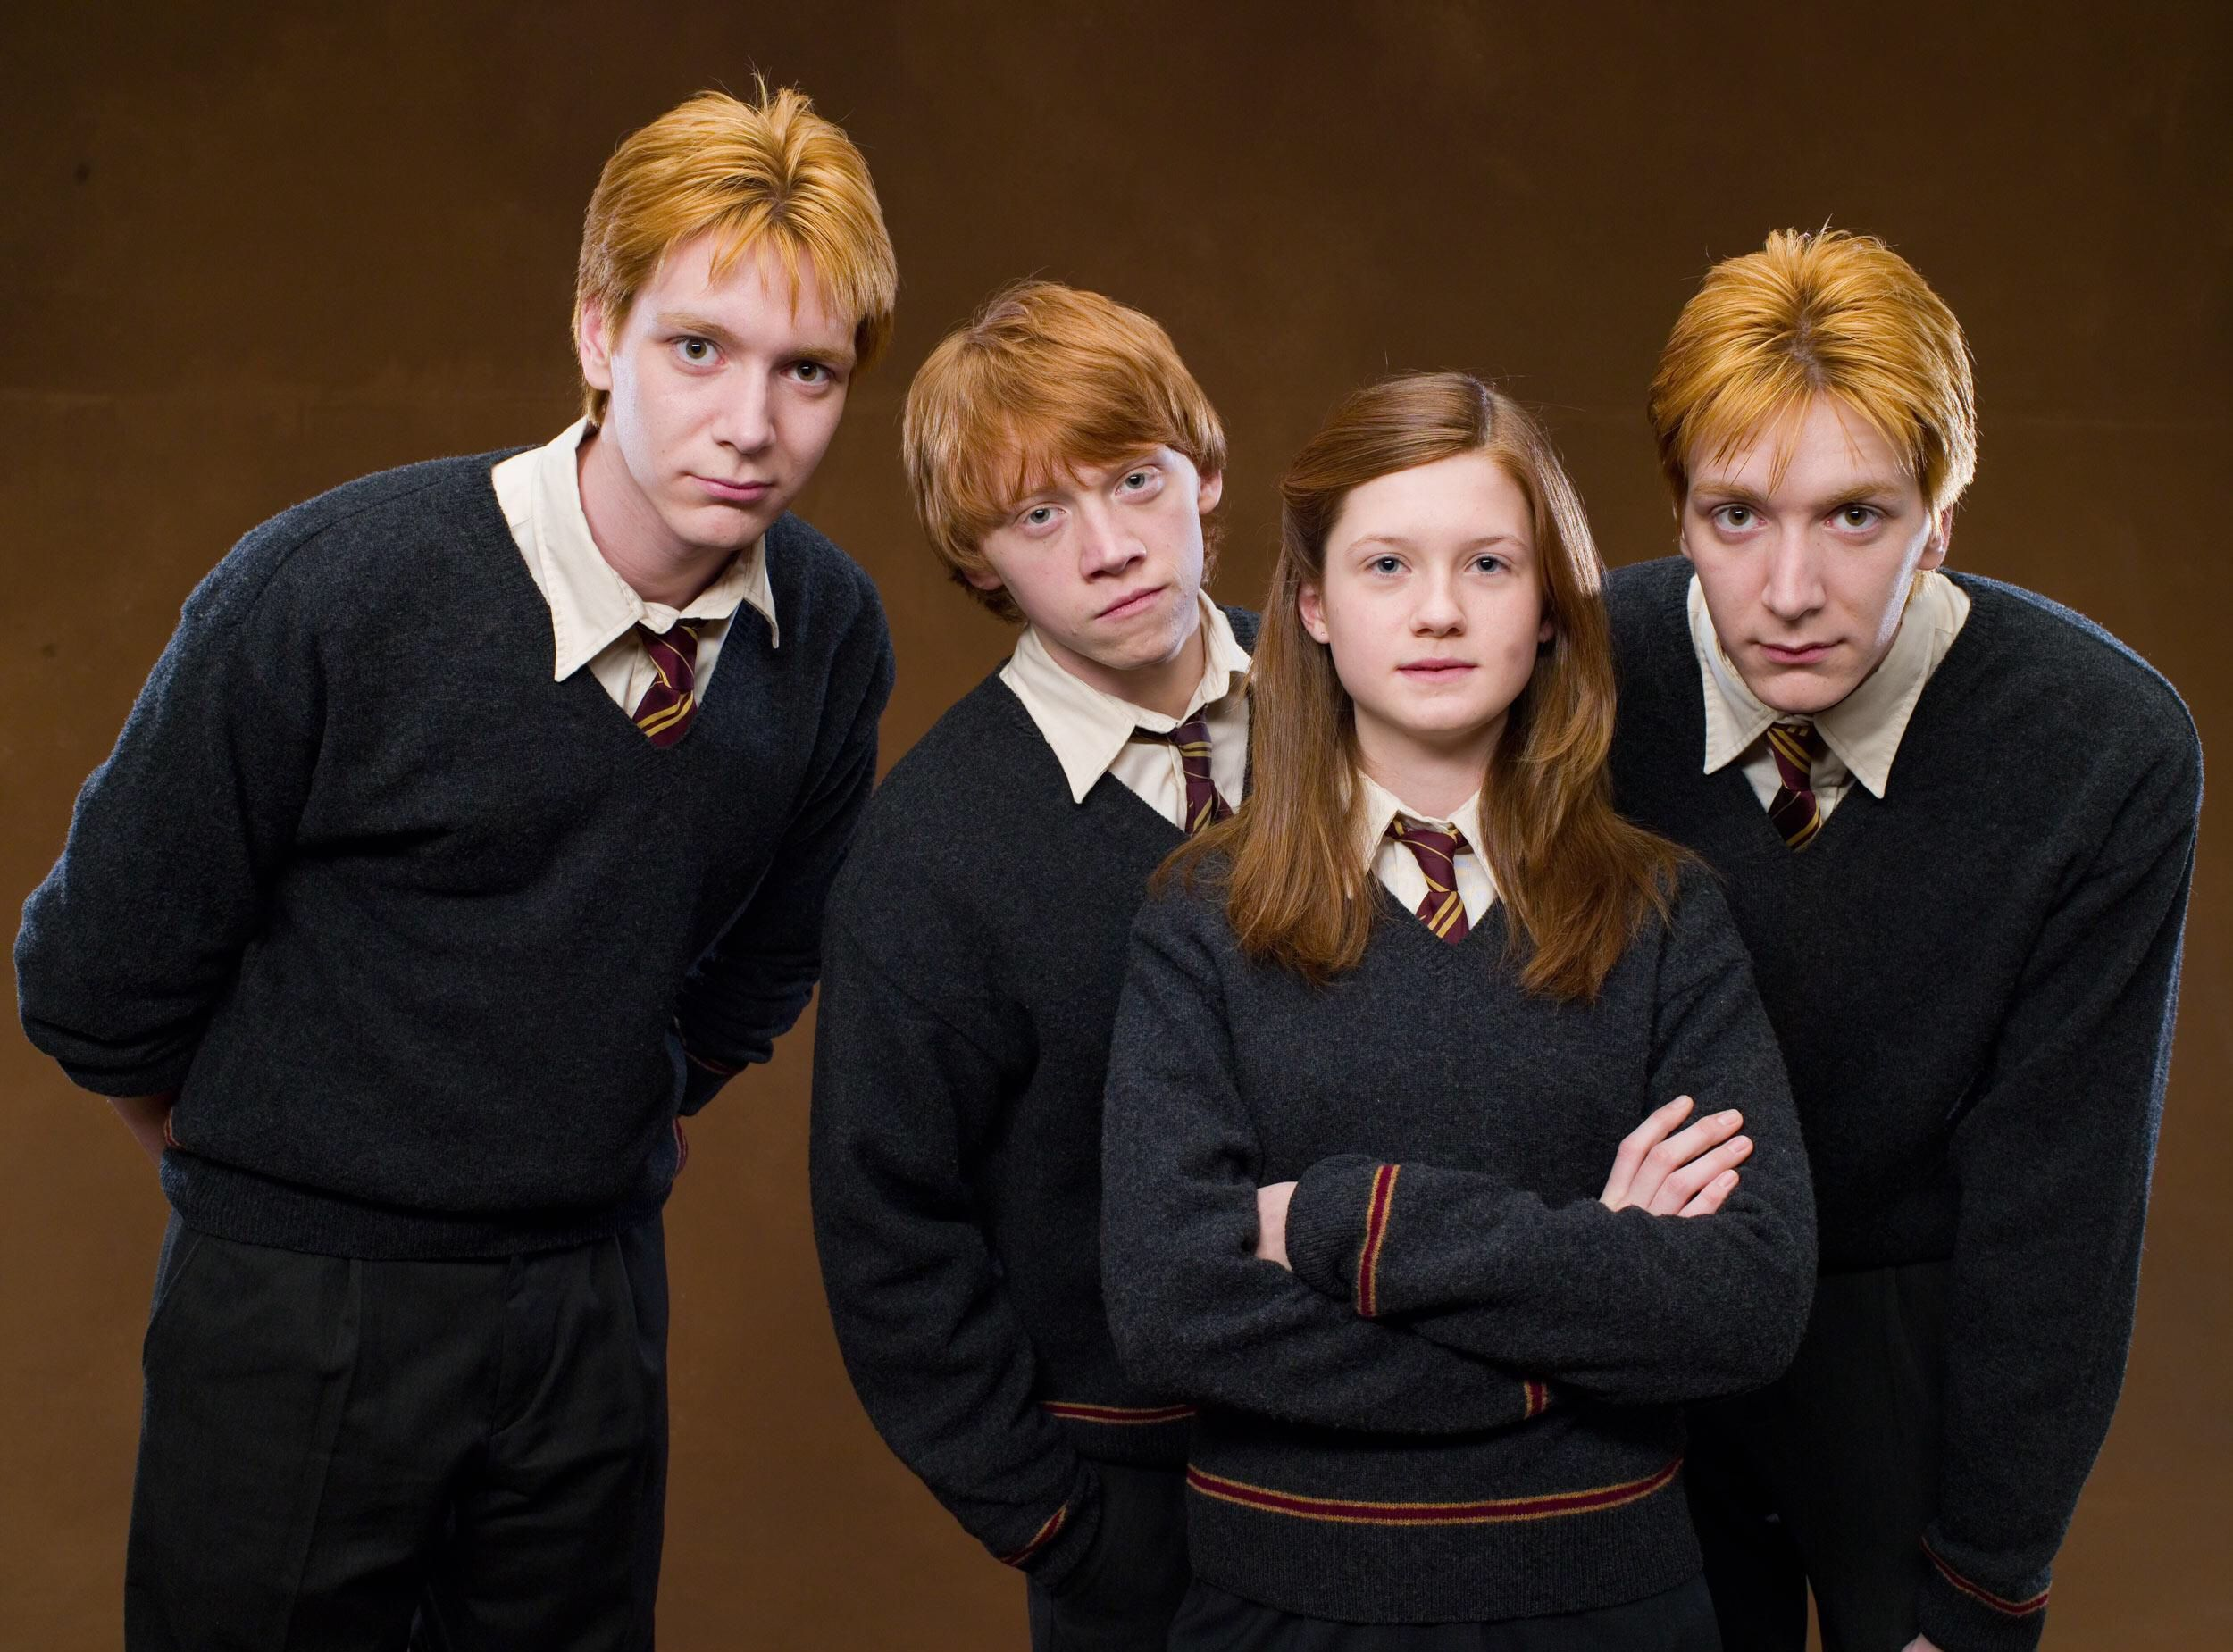 The Dream Team | Harry Potter | Ginny weasley, Harry potter cast